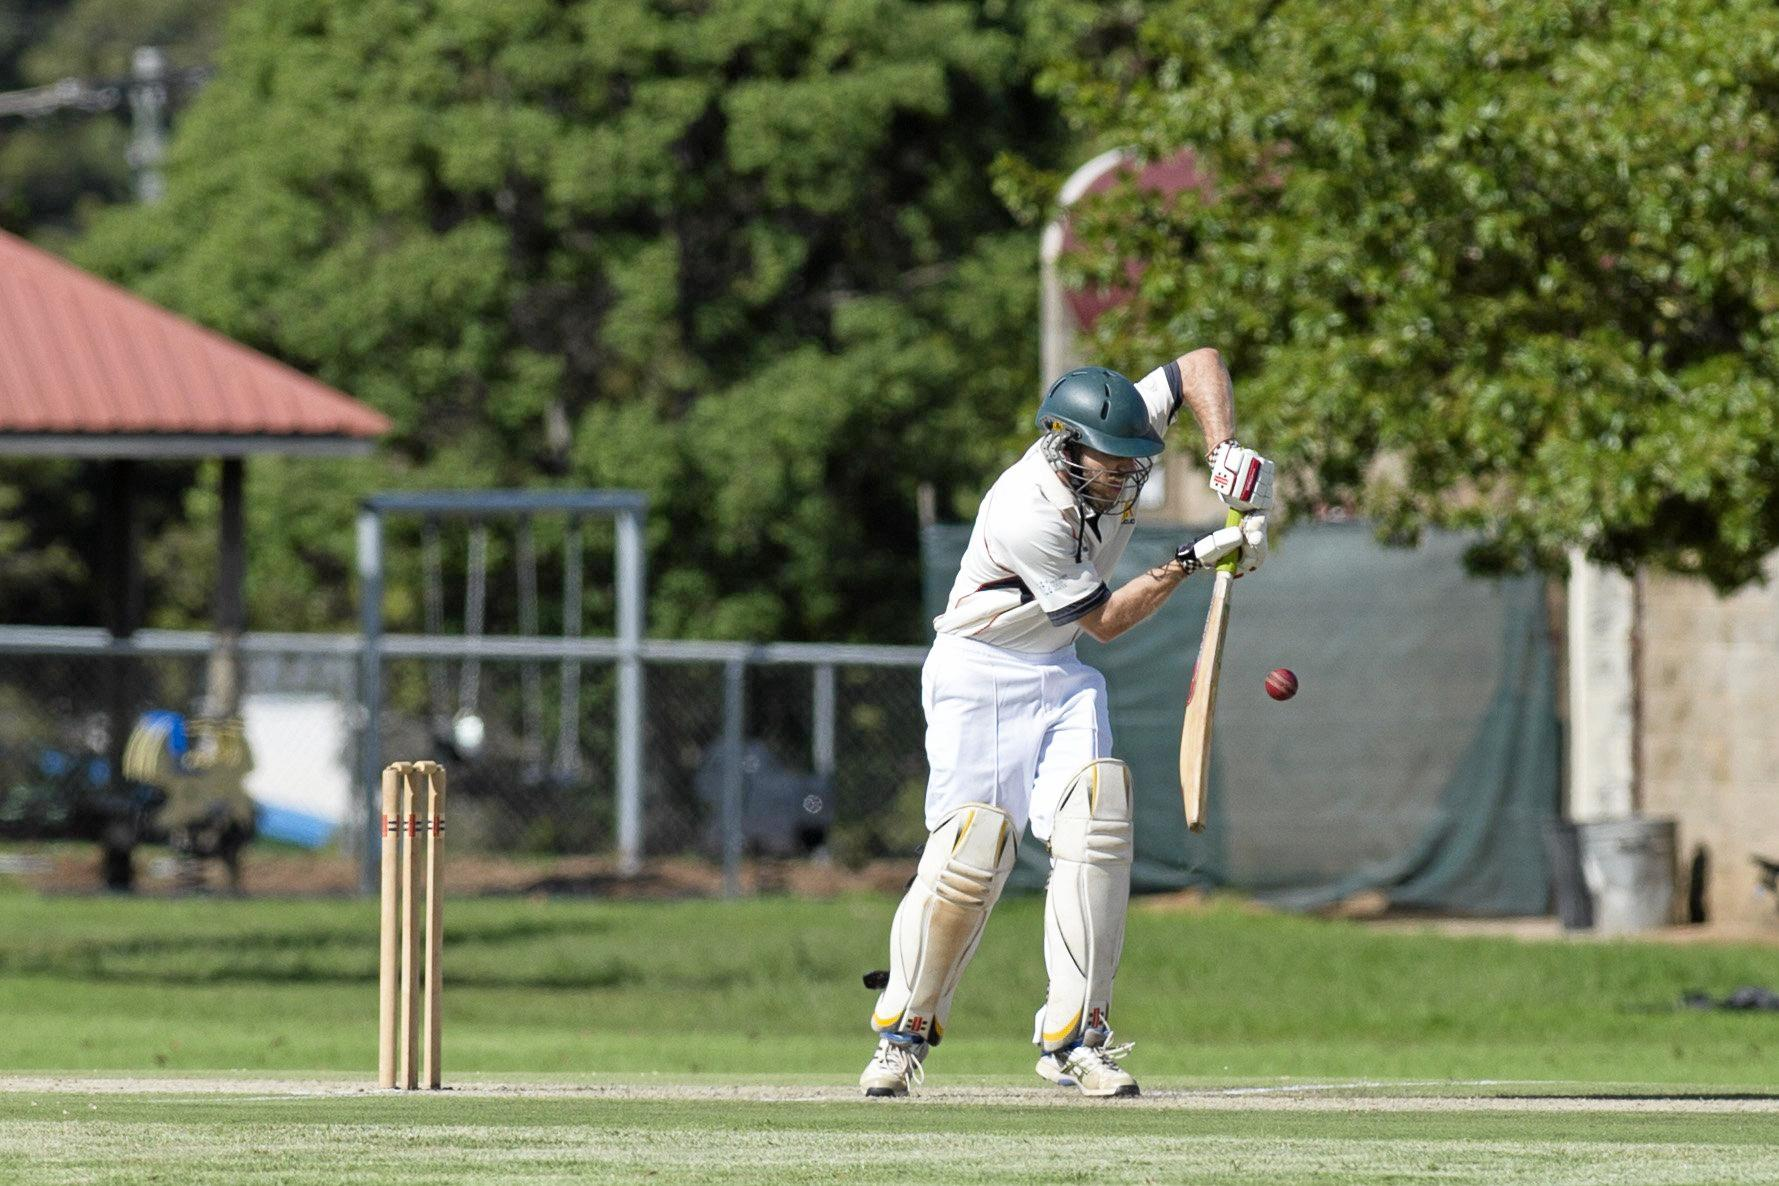 Ross Milton bats for Metropolitan Easts against Wests in Toowoomba Cricket A grade open two-day competition final at Captain Cook ovals, Saturday, March 25, 2017.